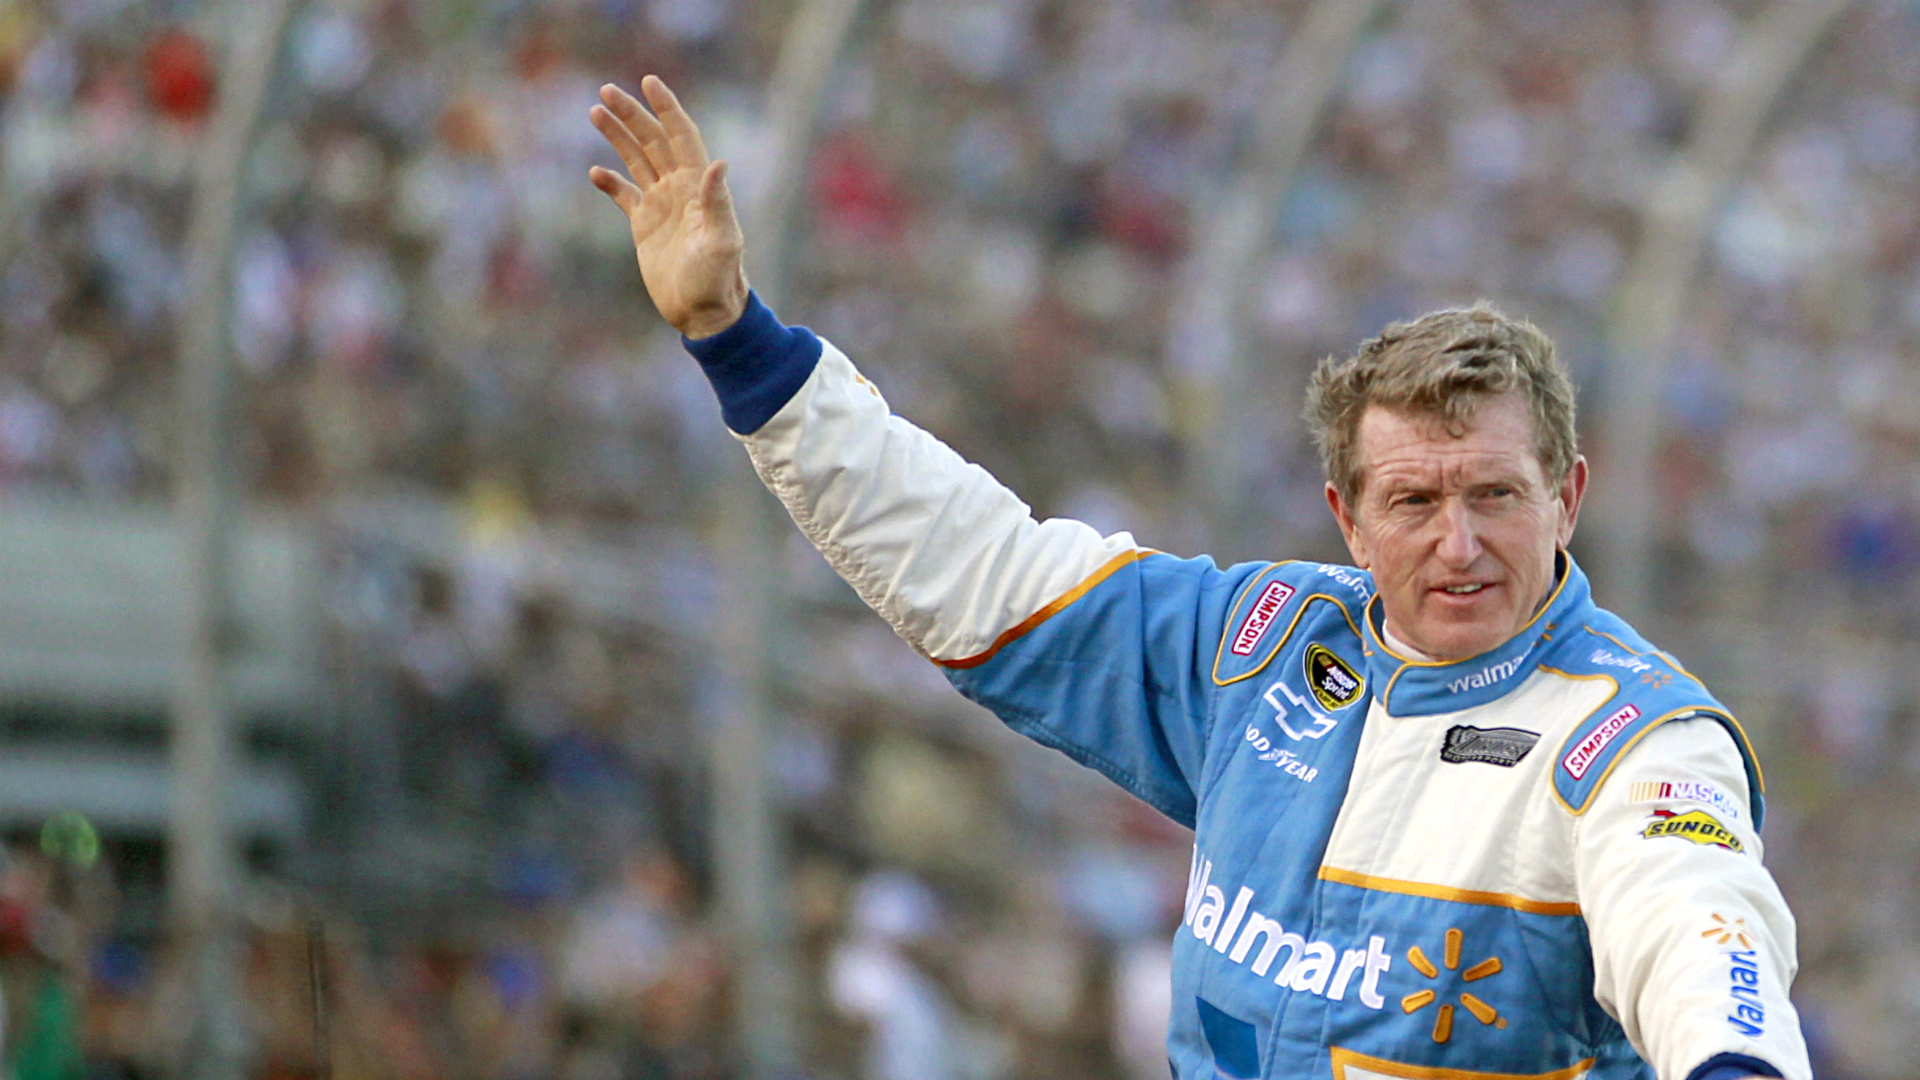 bill-elliott-7-7-12-AP-FTR